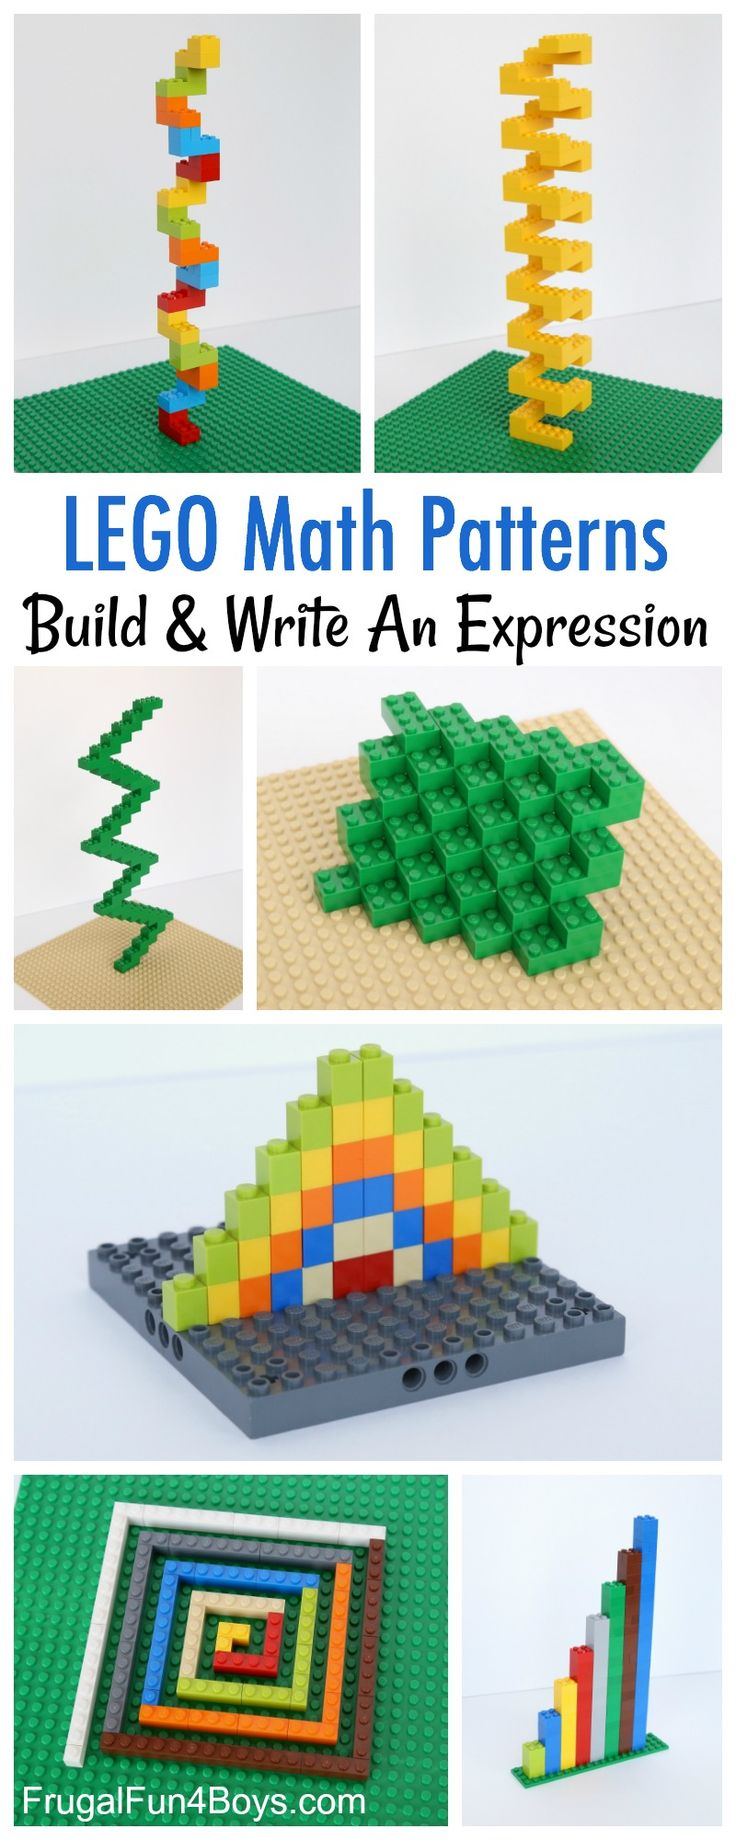 Build Math Patterns with LEGO Bricks – Frugal Fun For Boys and Girls